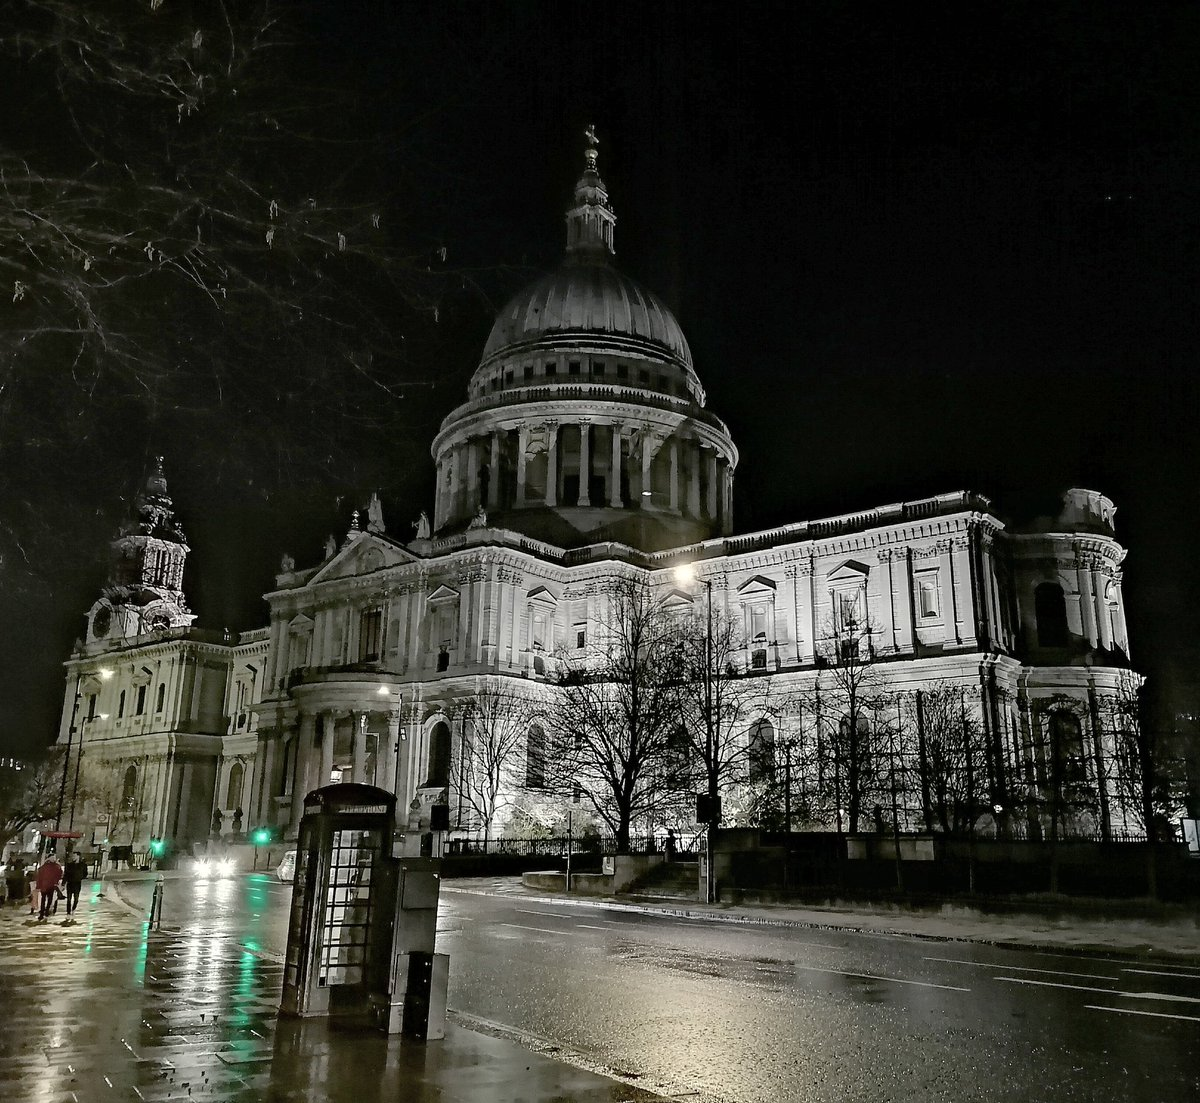 St Paul's Cathedral at #night in almost monochrome, just before lockdown March 2020 #MuseumsUnlocked